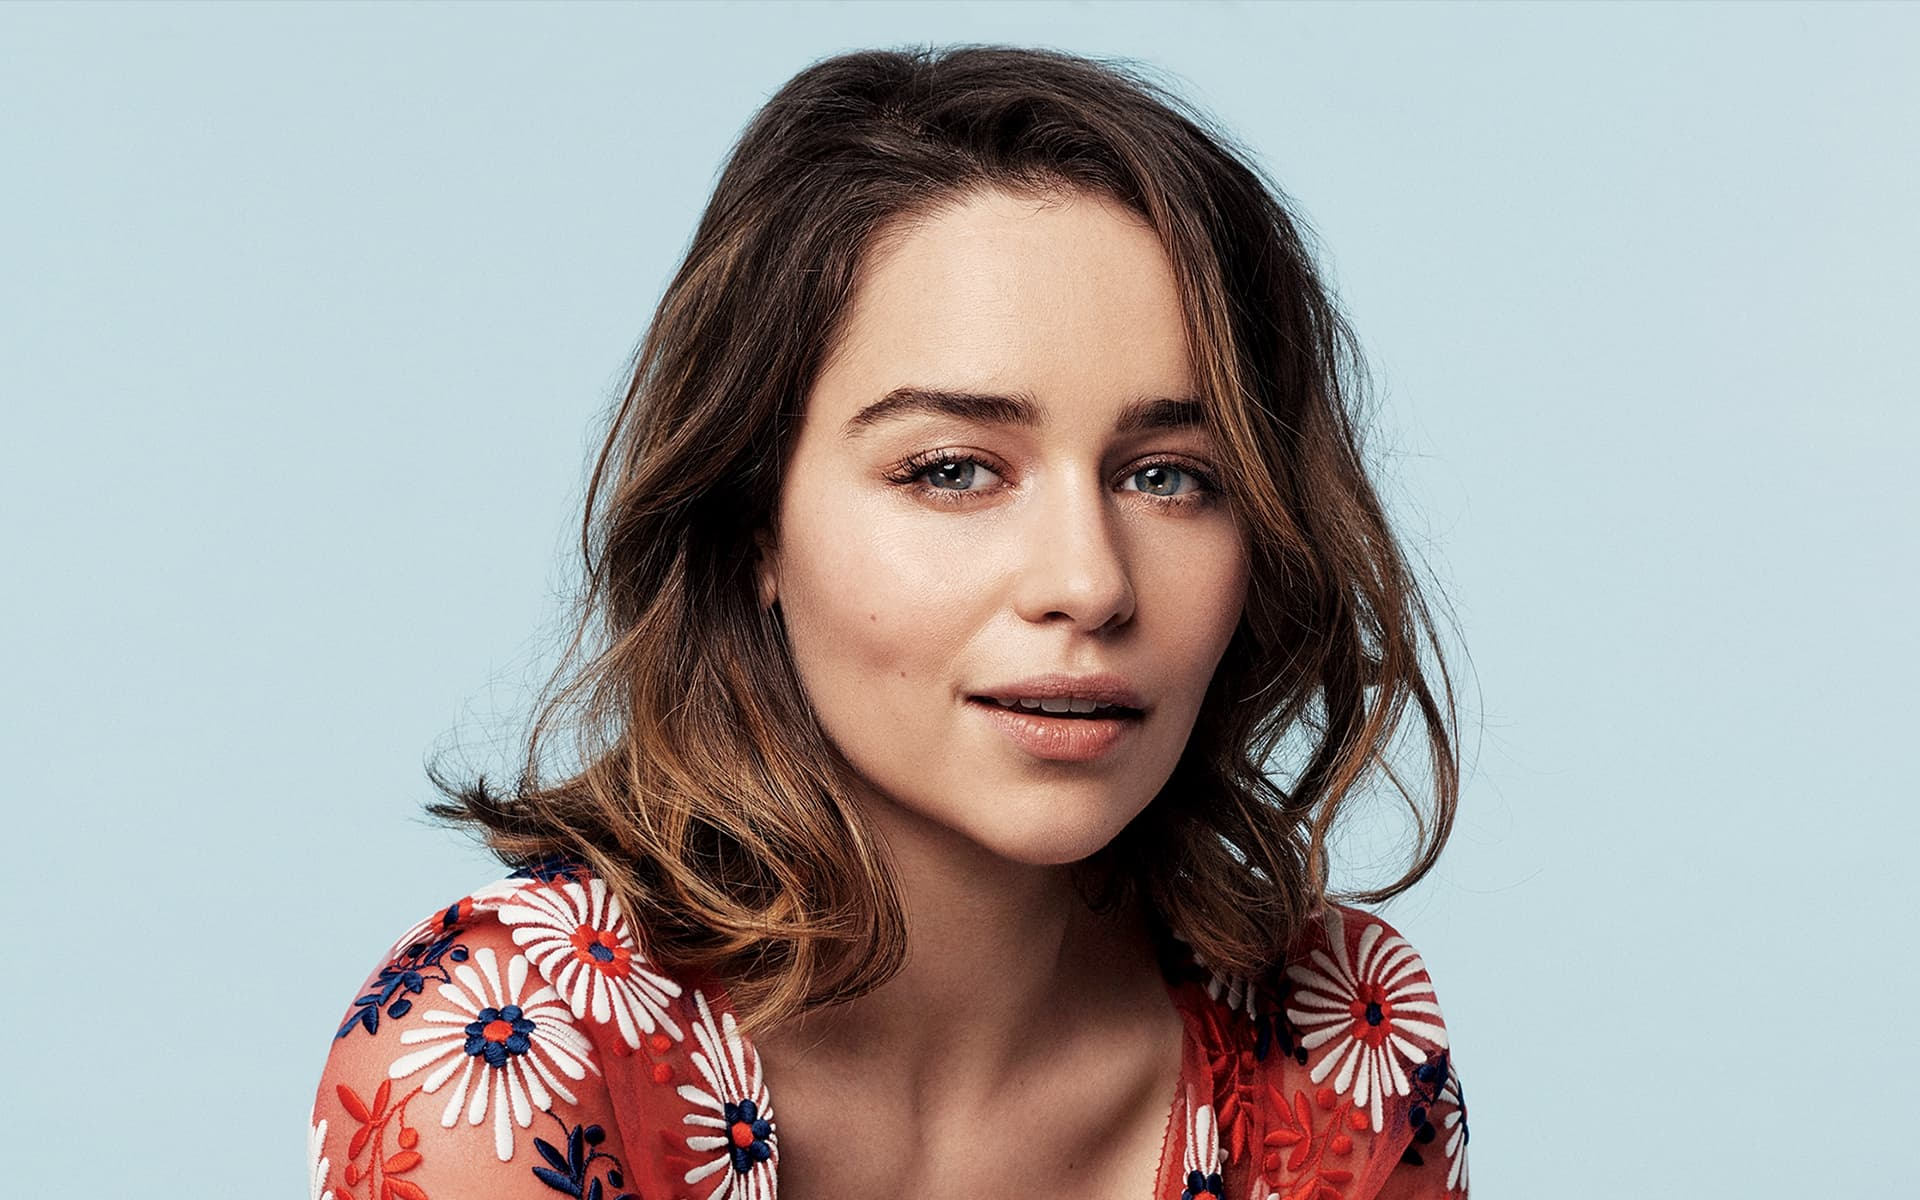 Cute And Pretty Wallpapers 15 Emilia Clarke Wallpapers Hd High Quality Resolution